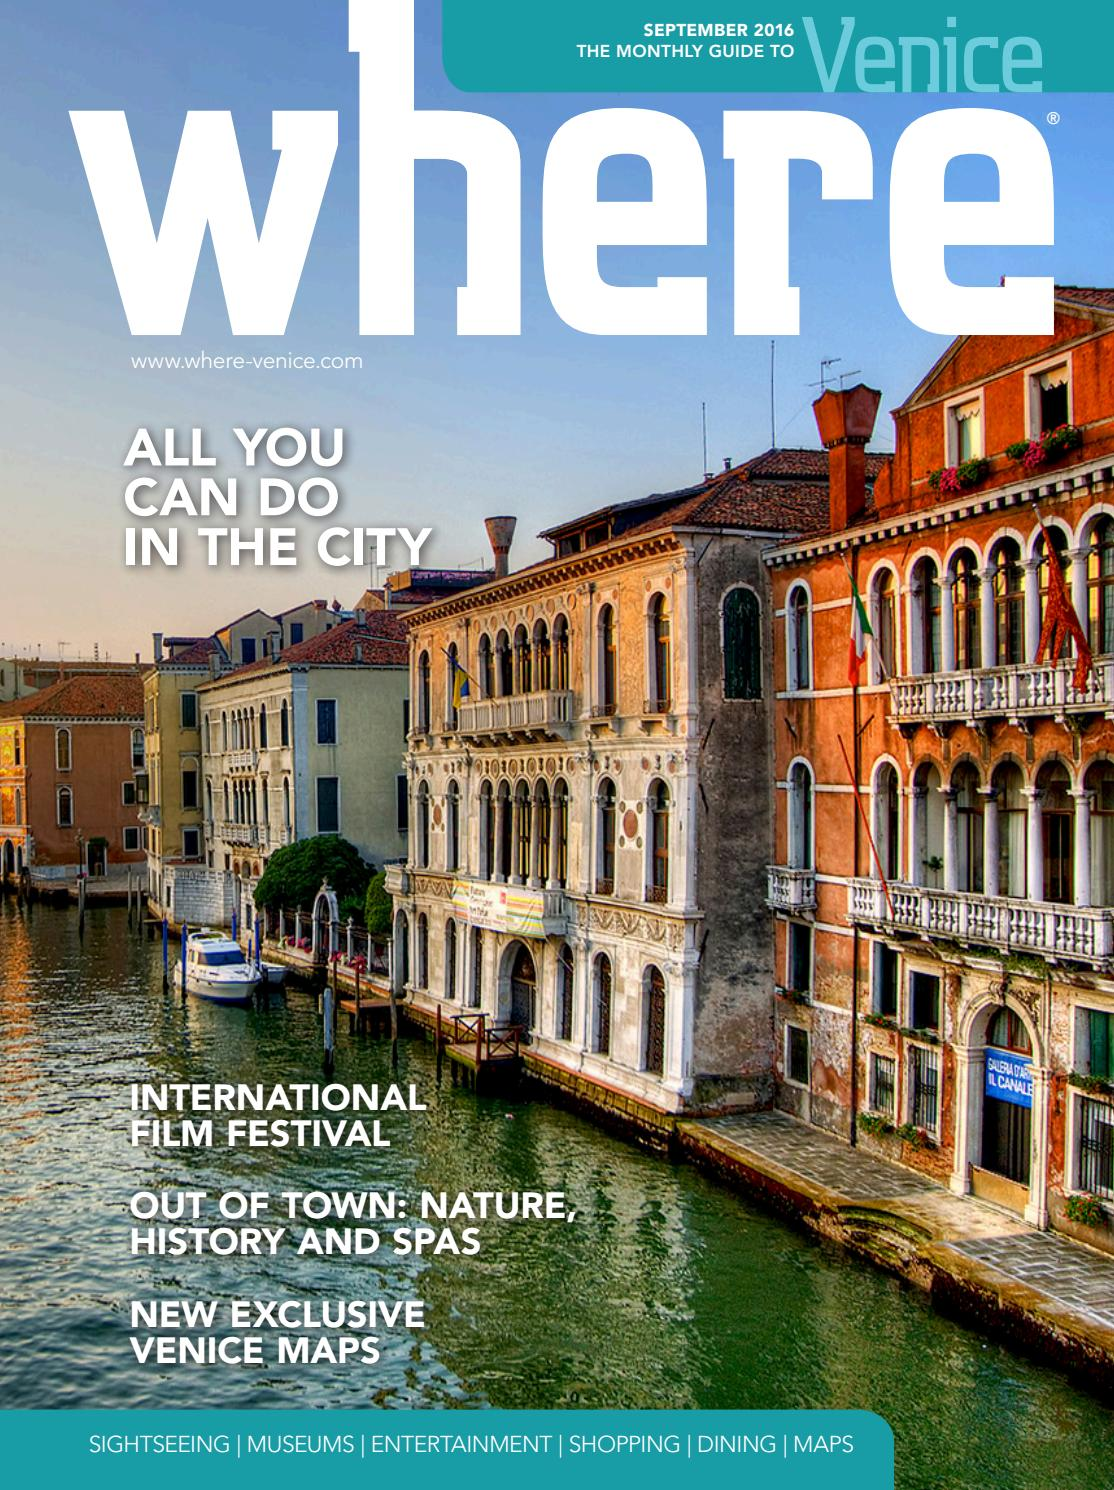 Antica Arte Navagero Murano Where Venice N 1 September 2016 By Where Italia Issuu